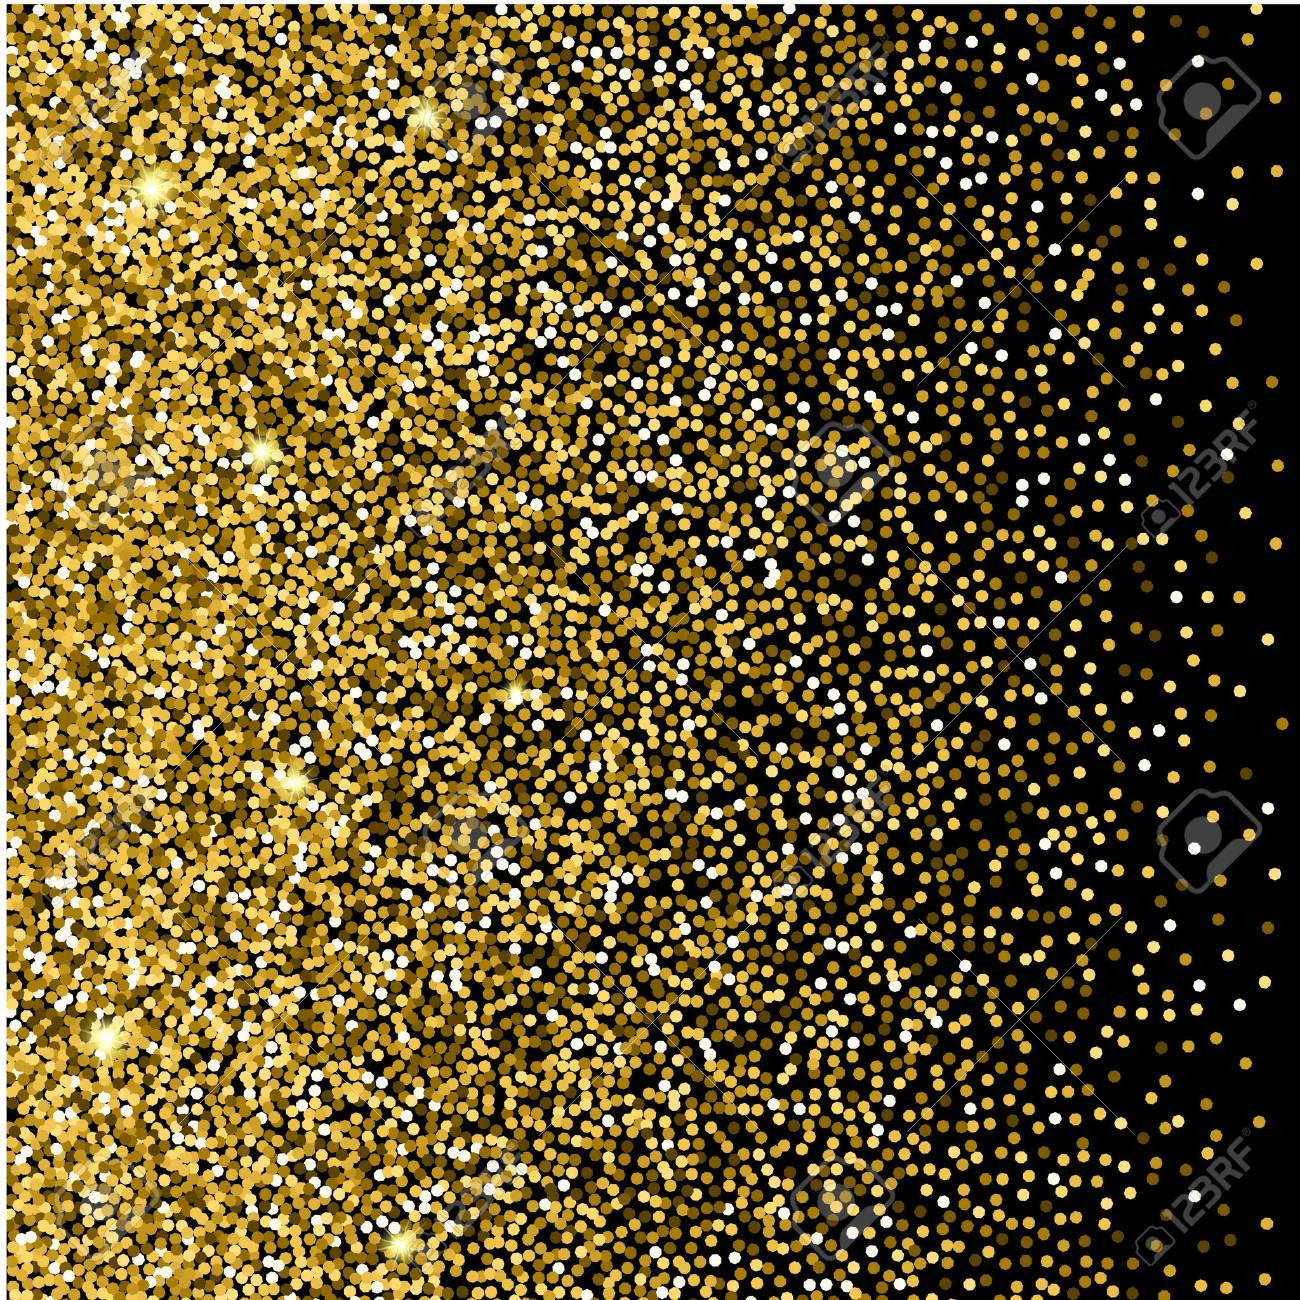 Gold glitter background gold sparkles on black background creative gold glitter background gold sparkles on black background creative invitation for party holiday stopboris Images